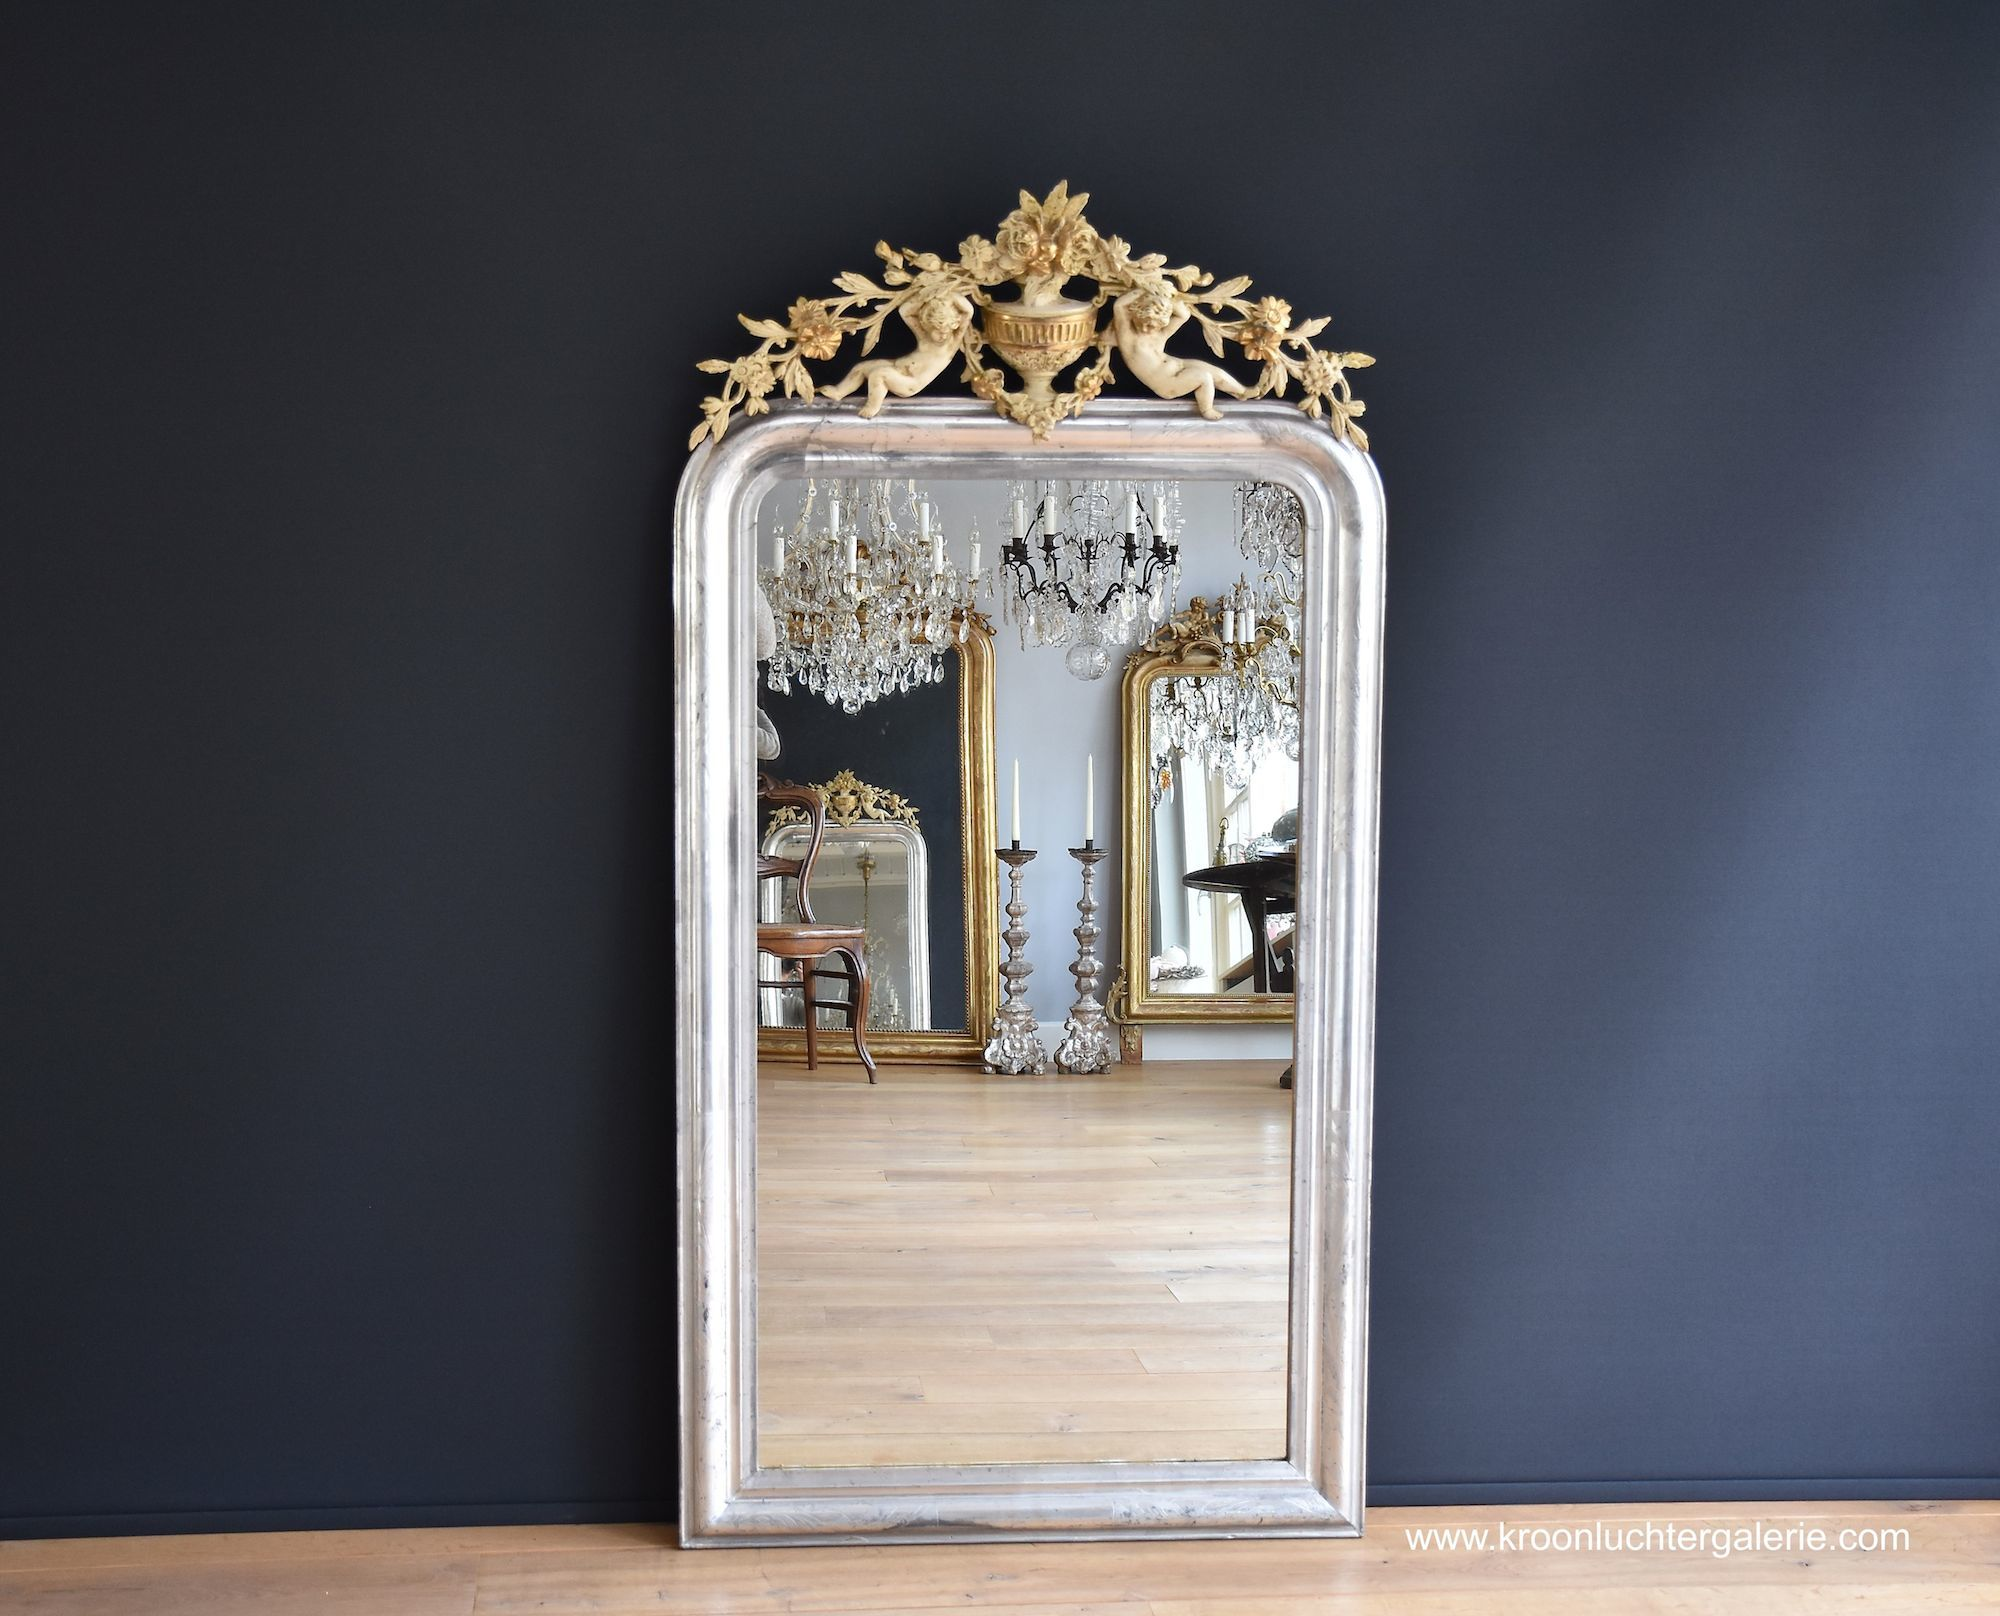 Antique French mirror with a crest, Silver-leaf